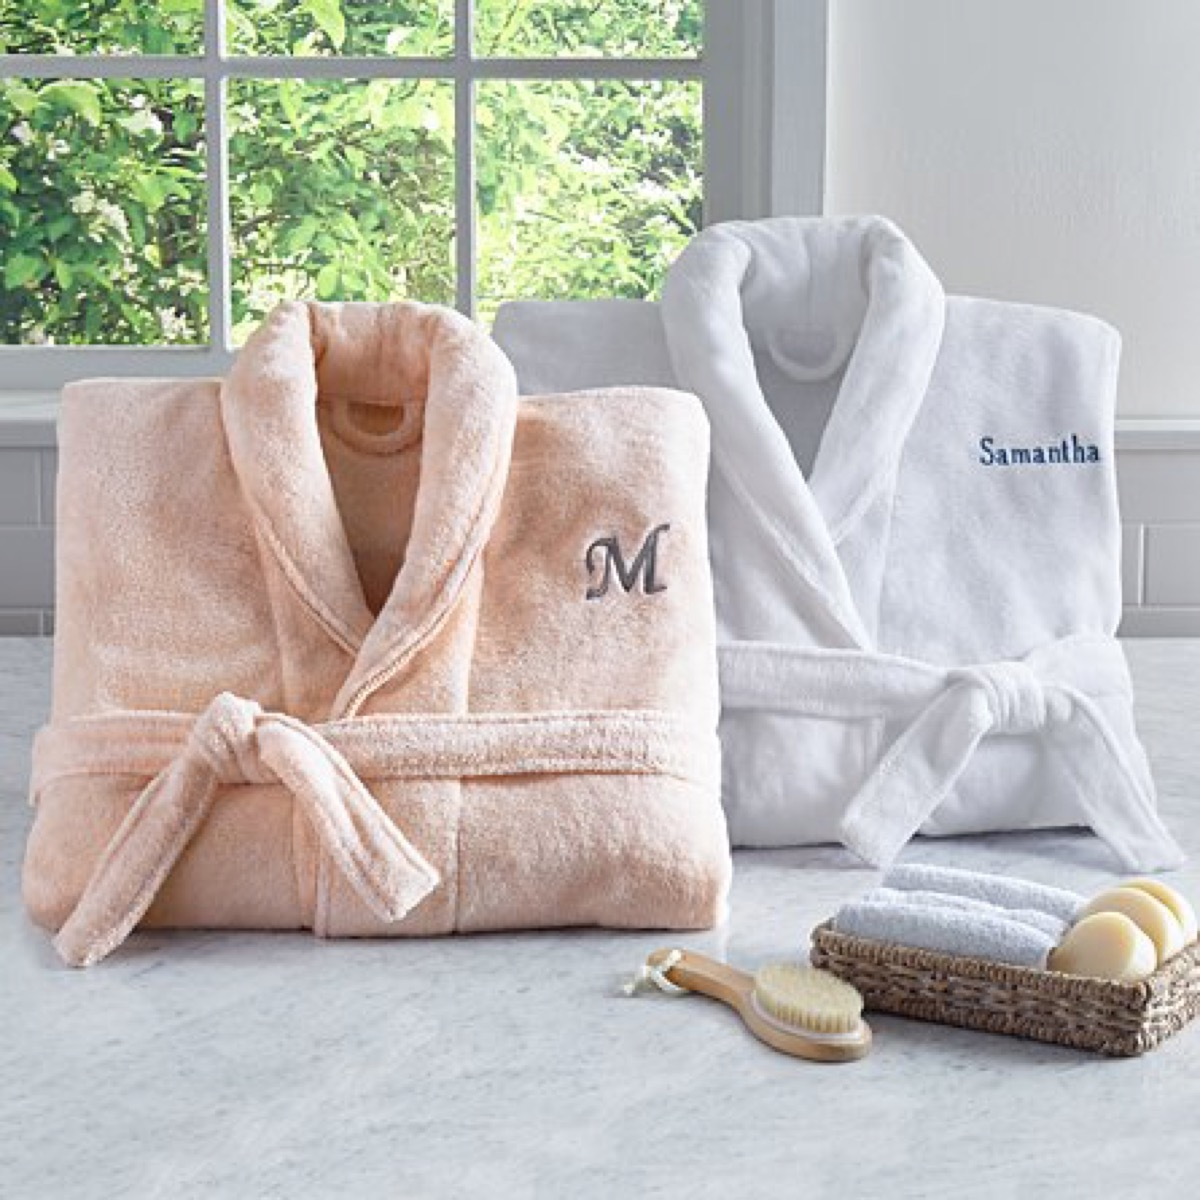 personalized robe, best friend gifts